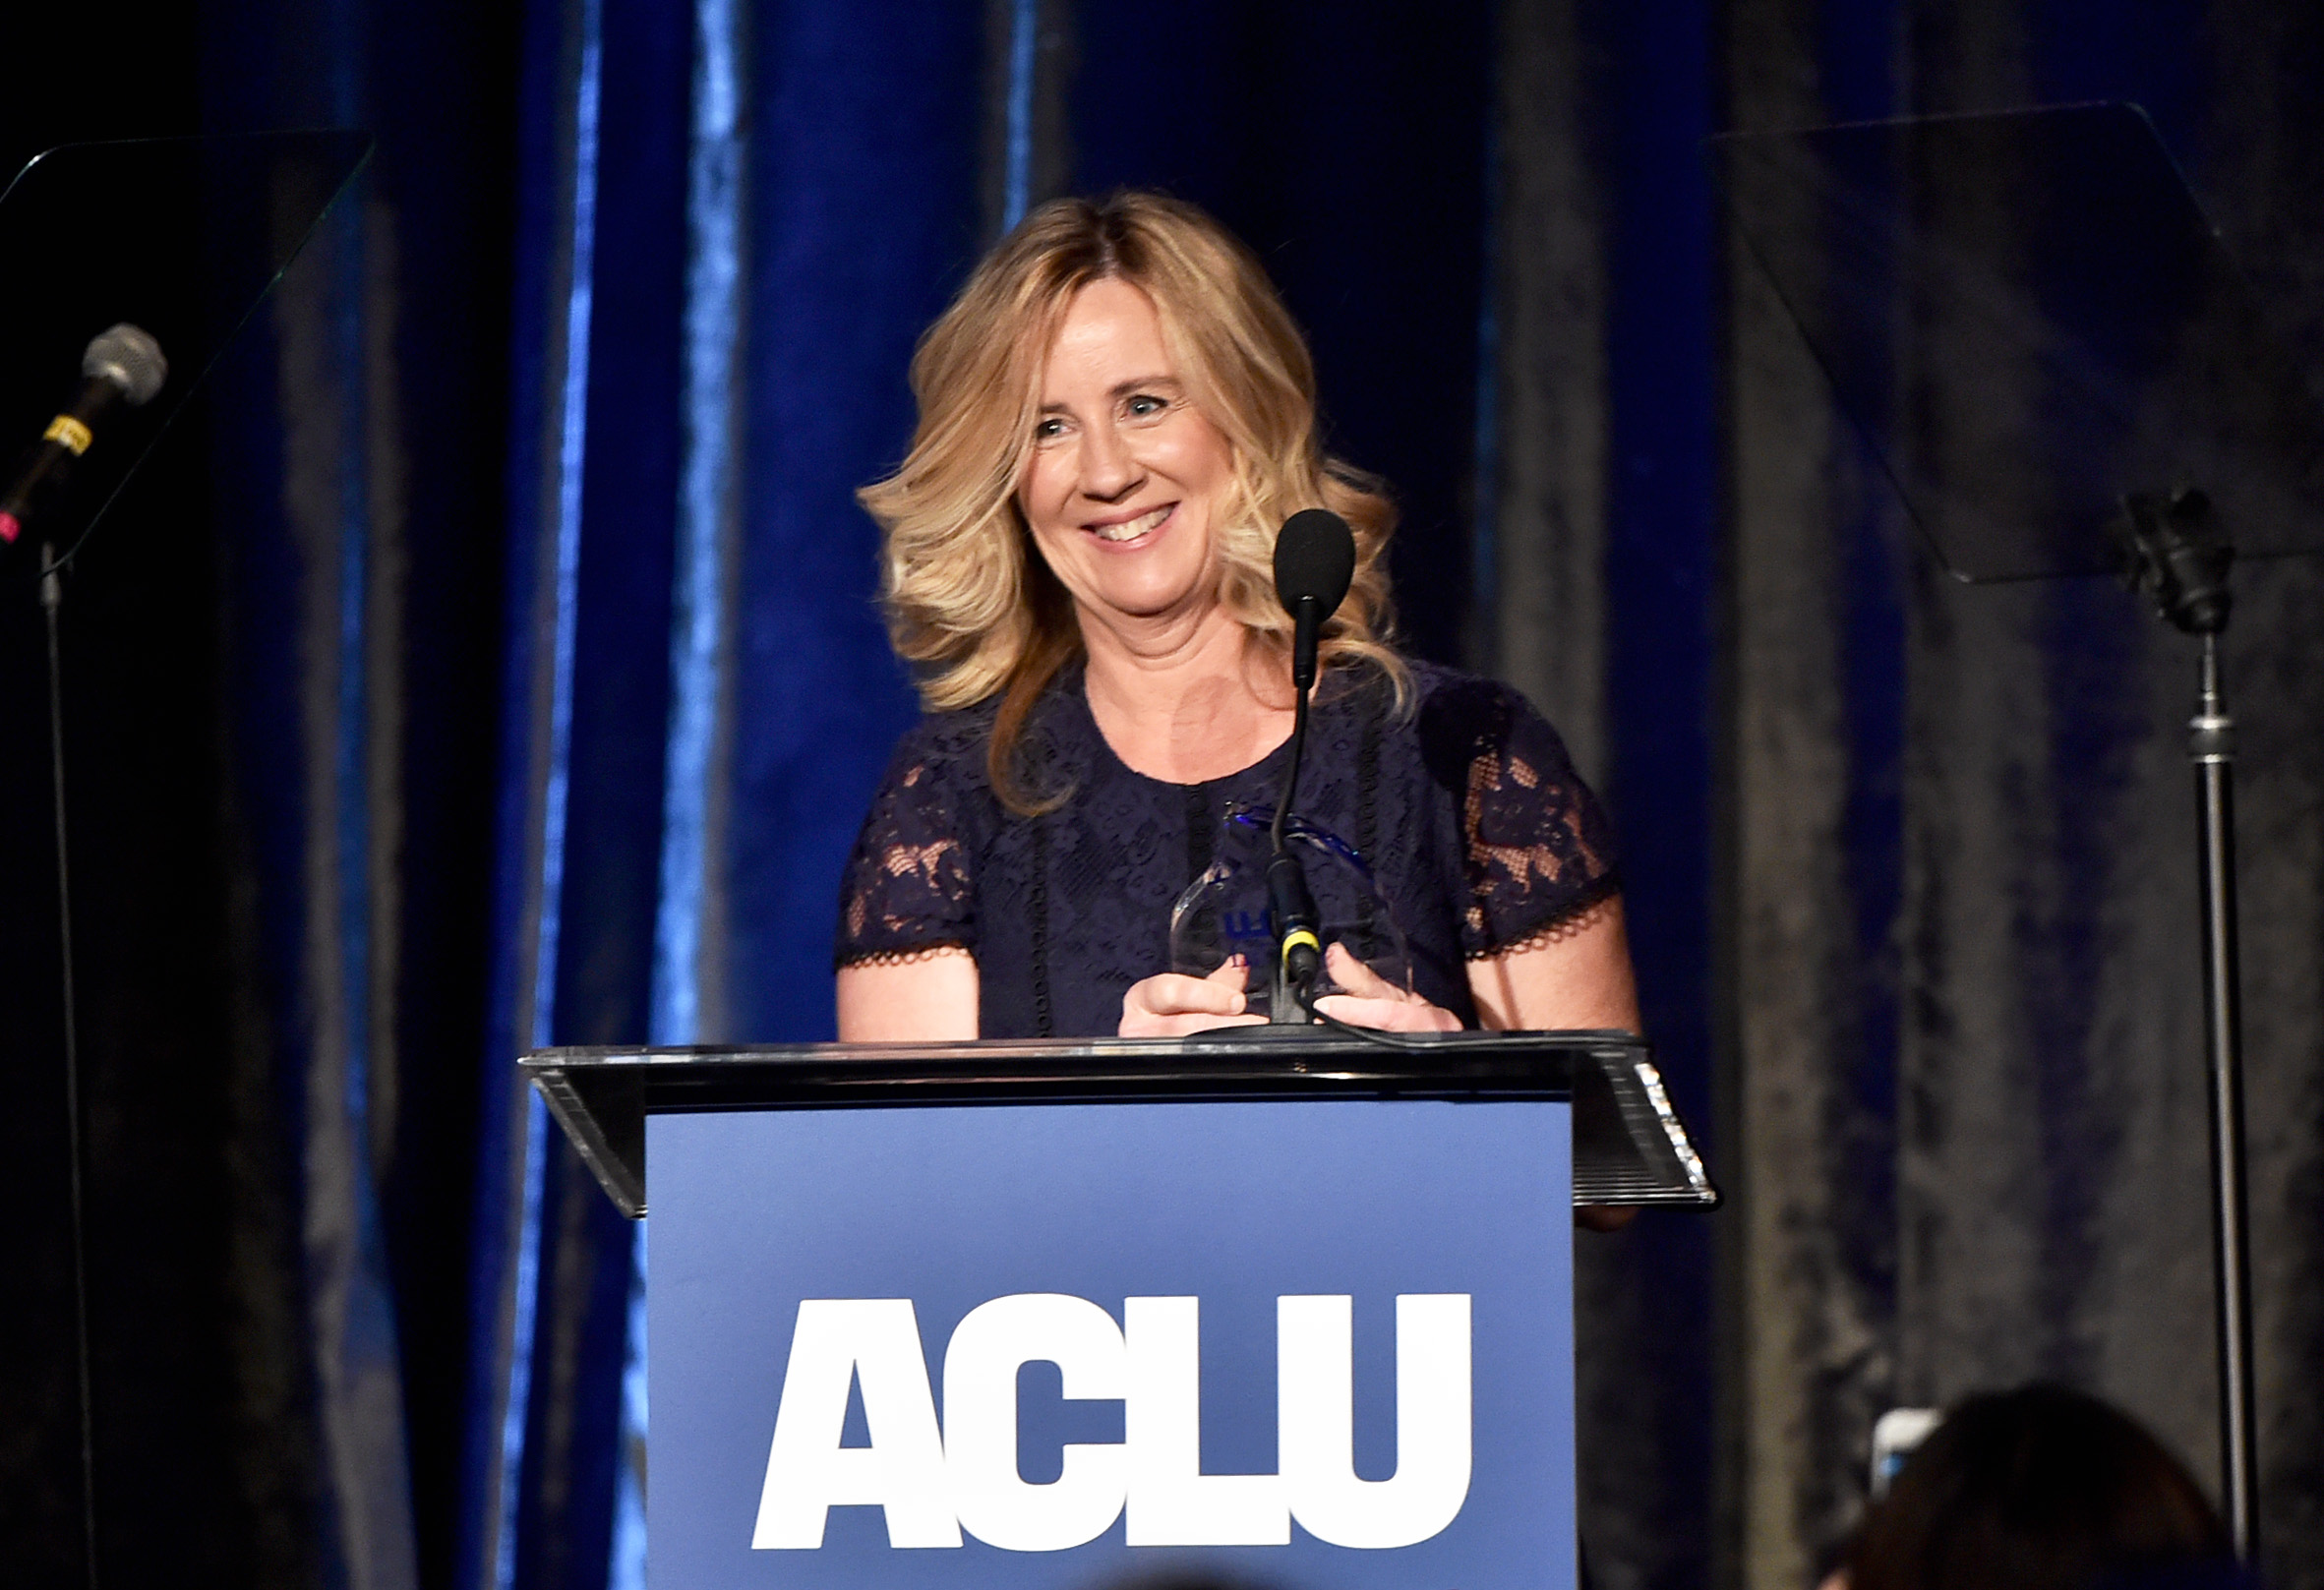 BEVERLY HILLS, CALIFORNIA - NOVEMBER 17: Dr. Christine Blasey Ford speaks onstage during ACLU SoCal's Annual Bill of Rights dinner at the Beverly Wilshire Four Seasons Hotel on November 17, 2019 in Beverly Hills, California.